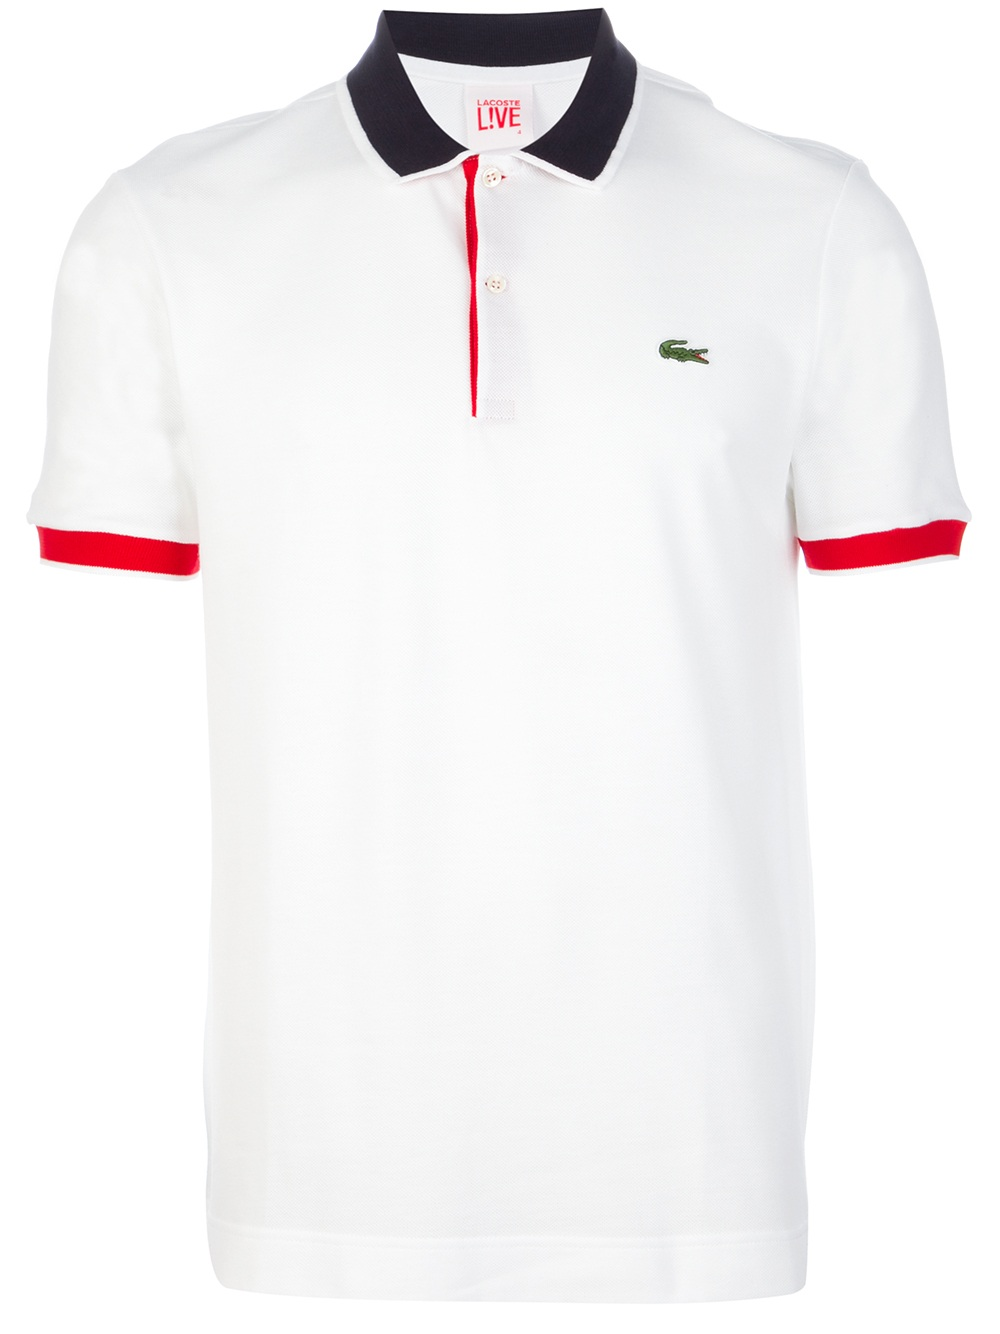 b9f7ae4d2c Lacoste Shirt For Sale - DREAMWORKS